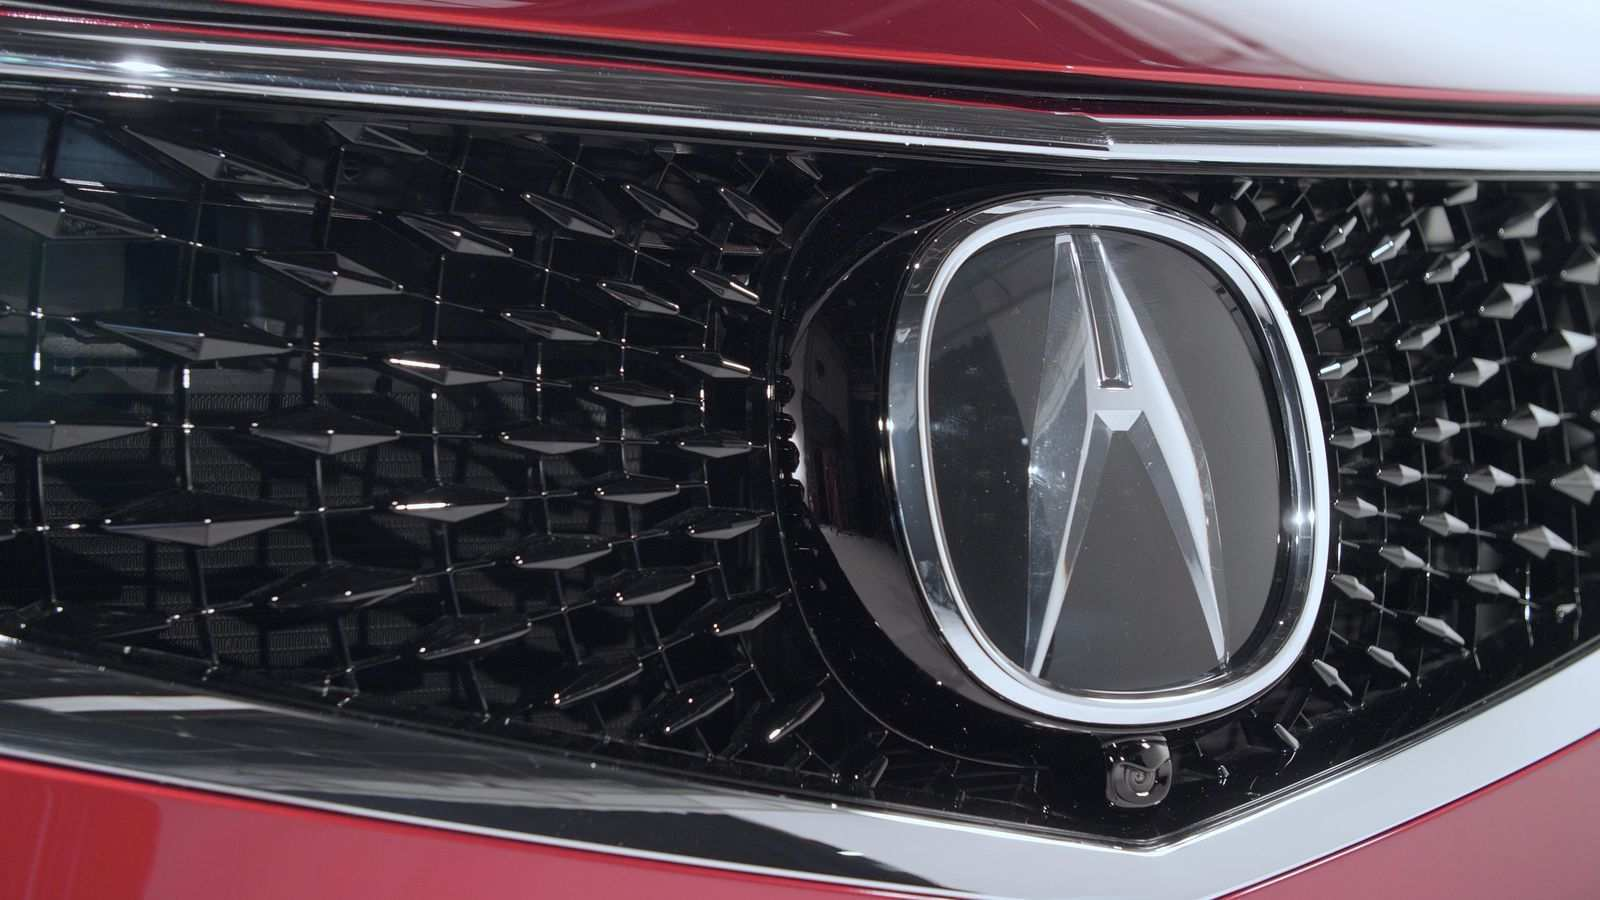 50 New 2020 Acura Tlx V6 Turbo Price Design And Review